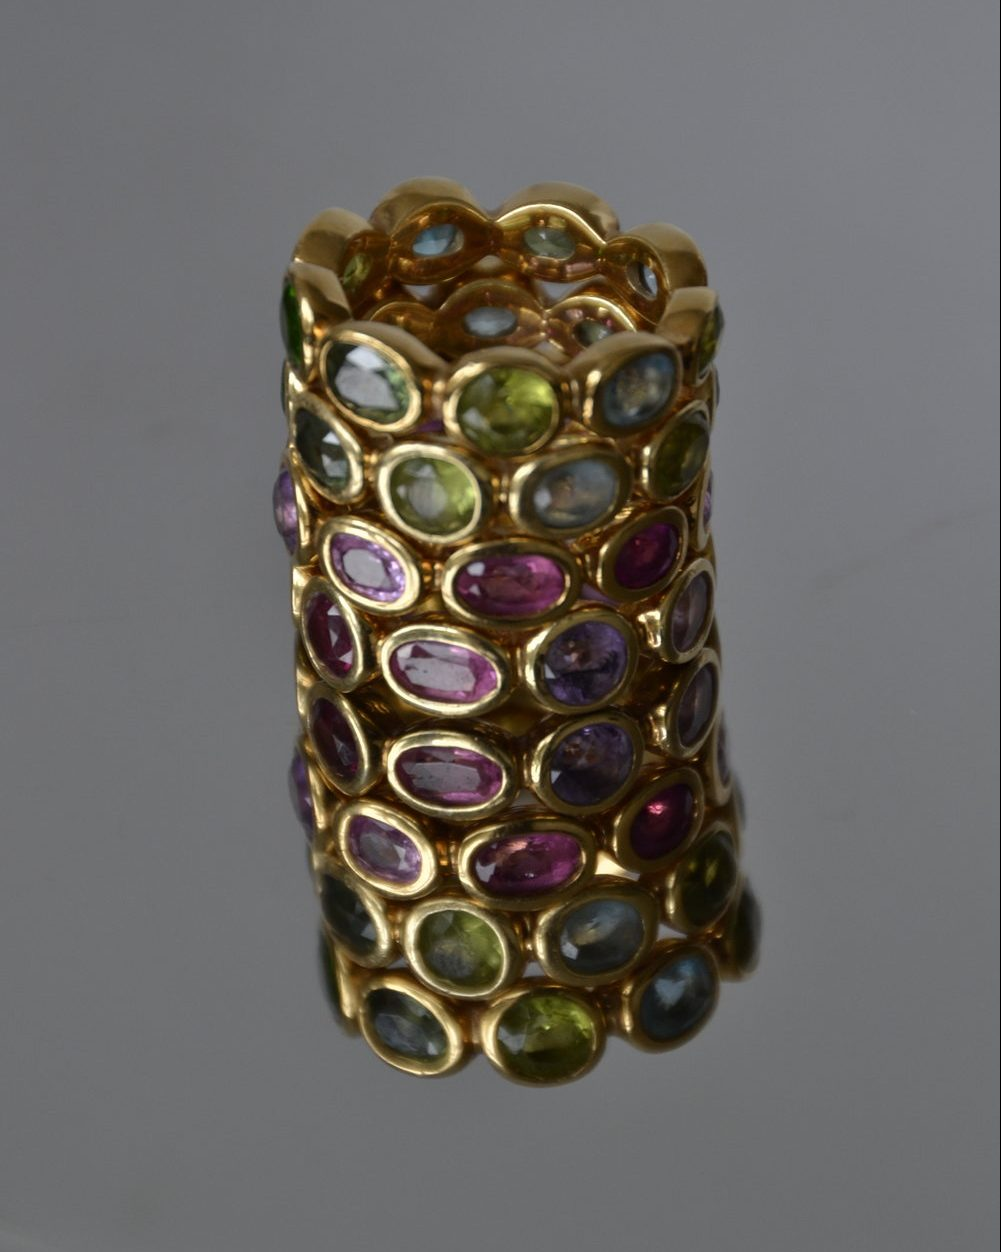 Bubble rings with mixed gemstones